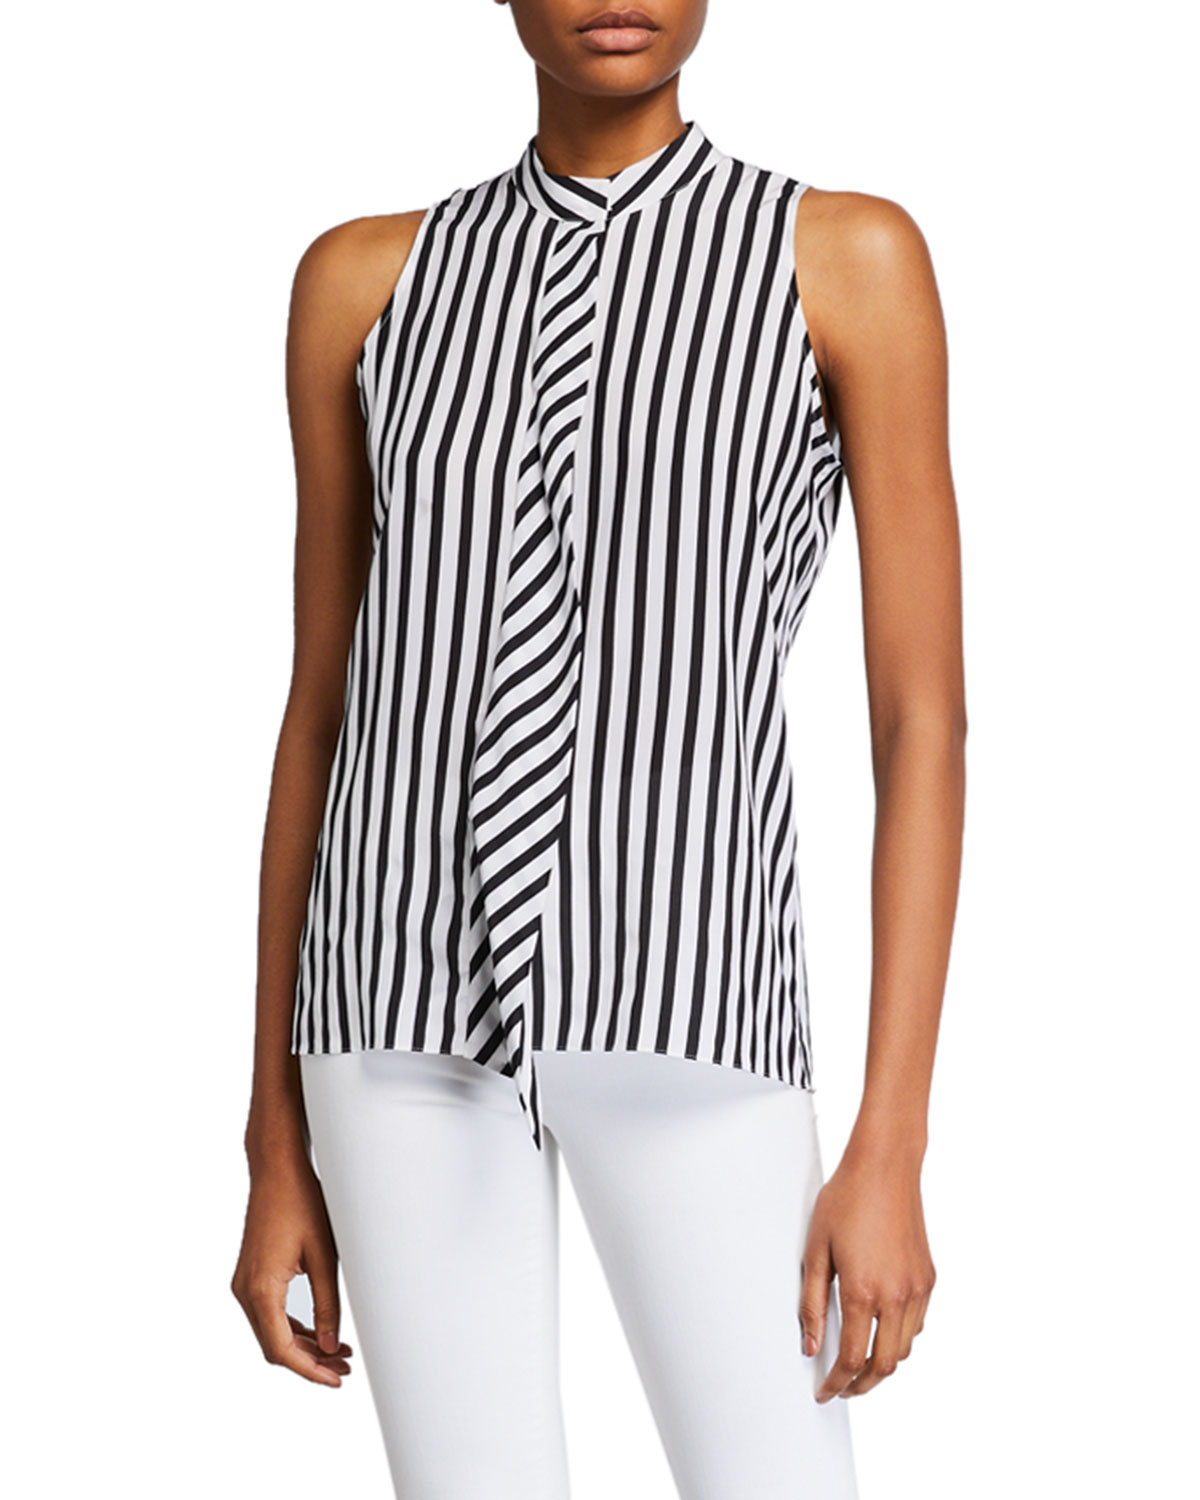 Frame Tops STRIPED SLEEVELESS CRAVAT TOP